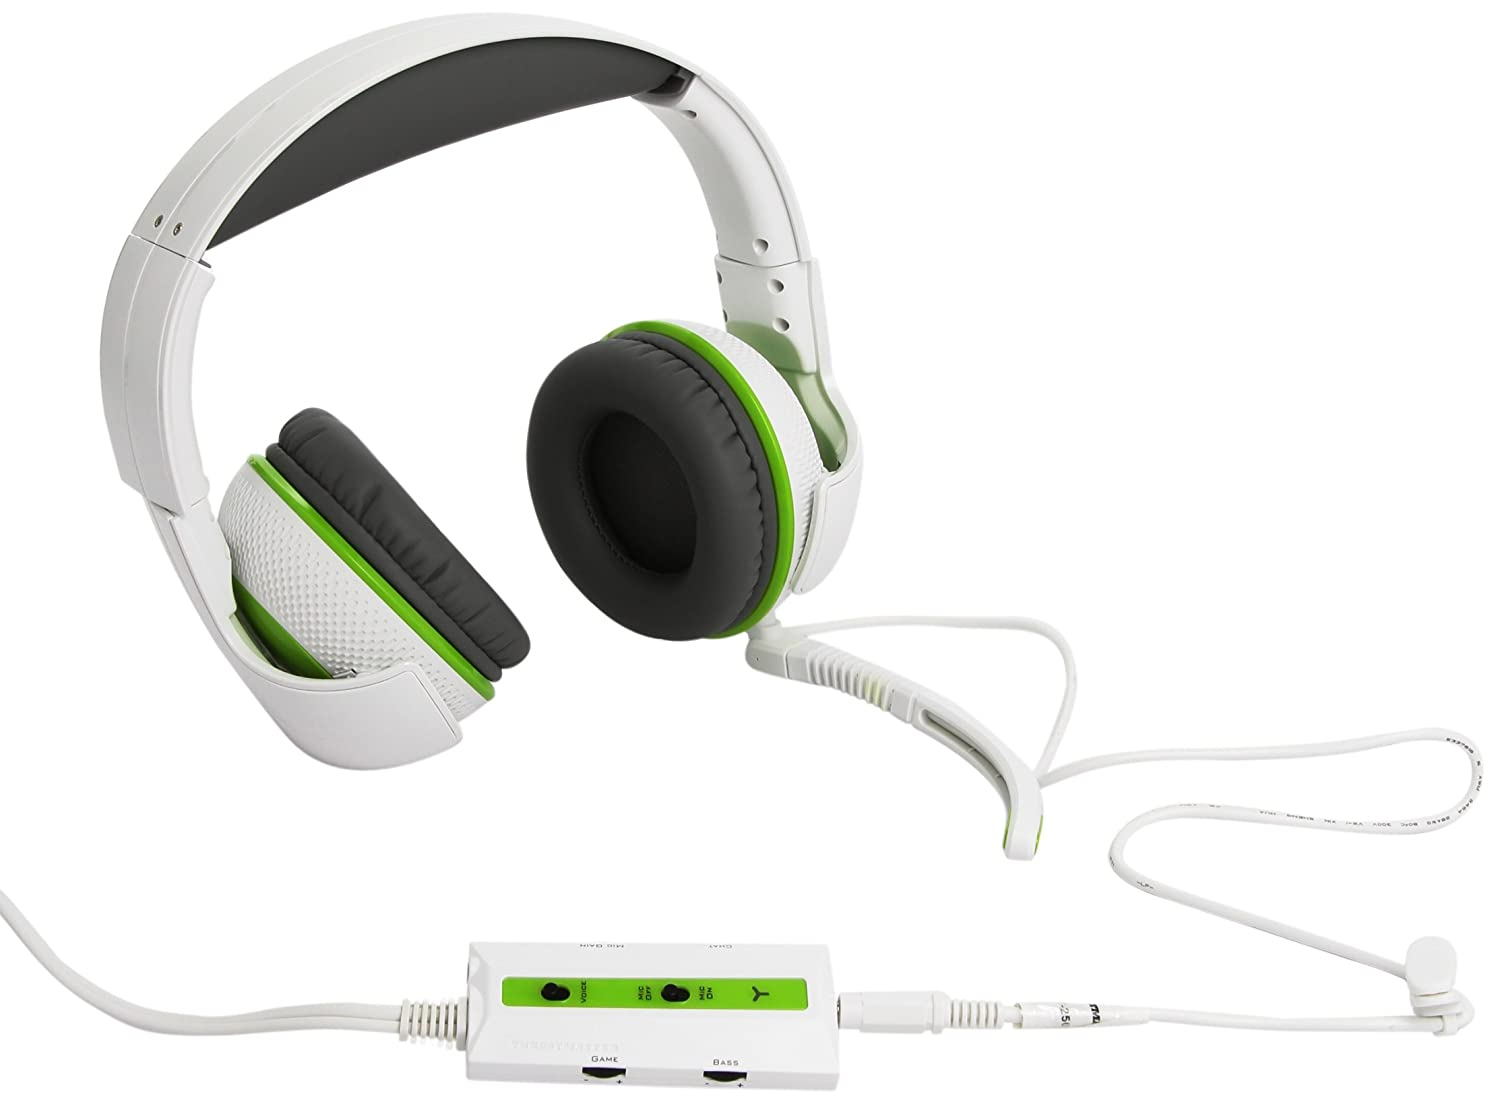 Thrustmaster Gaming Headset: Wired Manufacturer direct delivery Y250X 360 Popular brand - Xbox